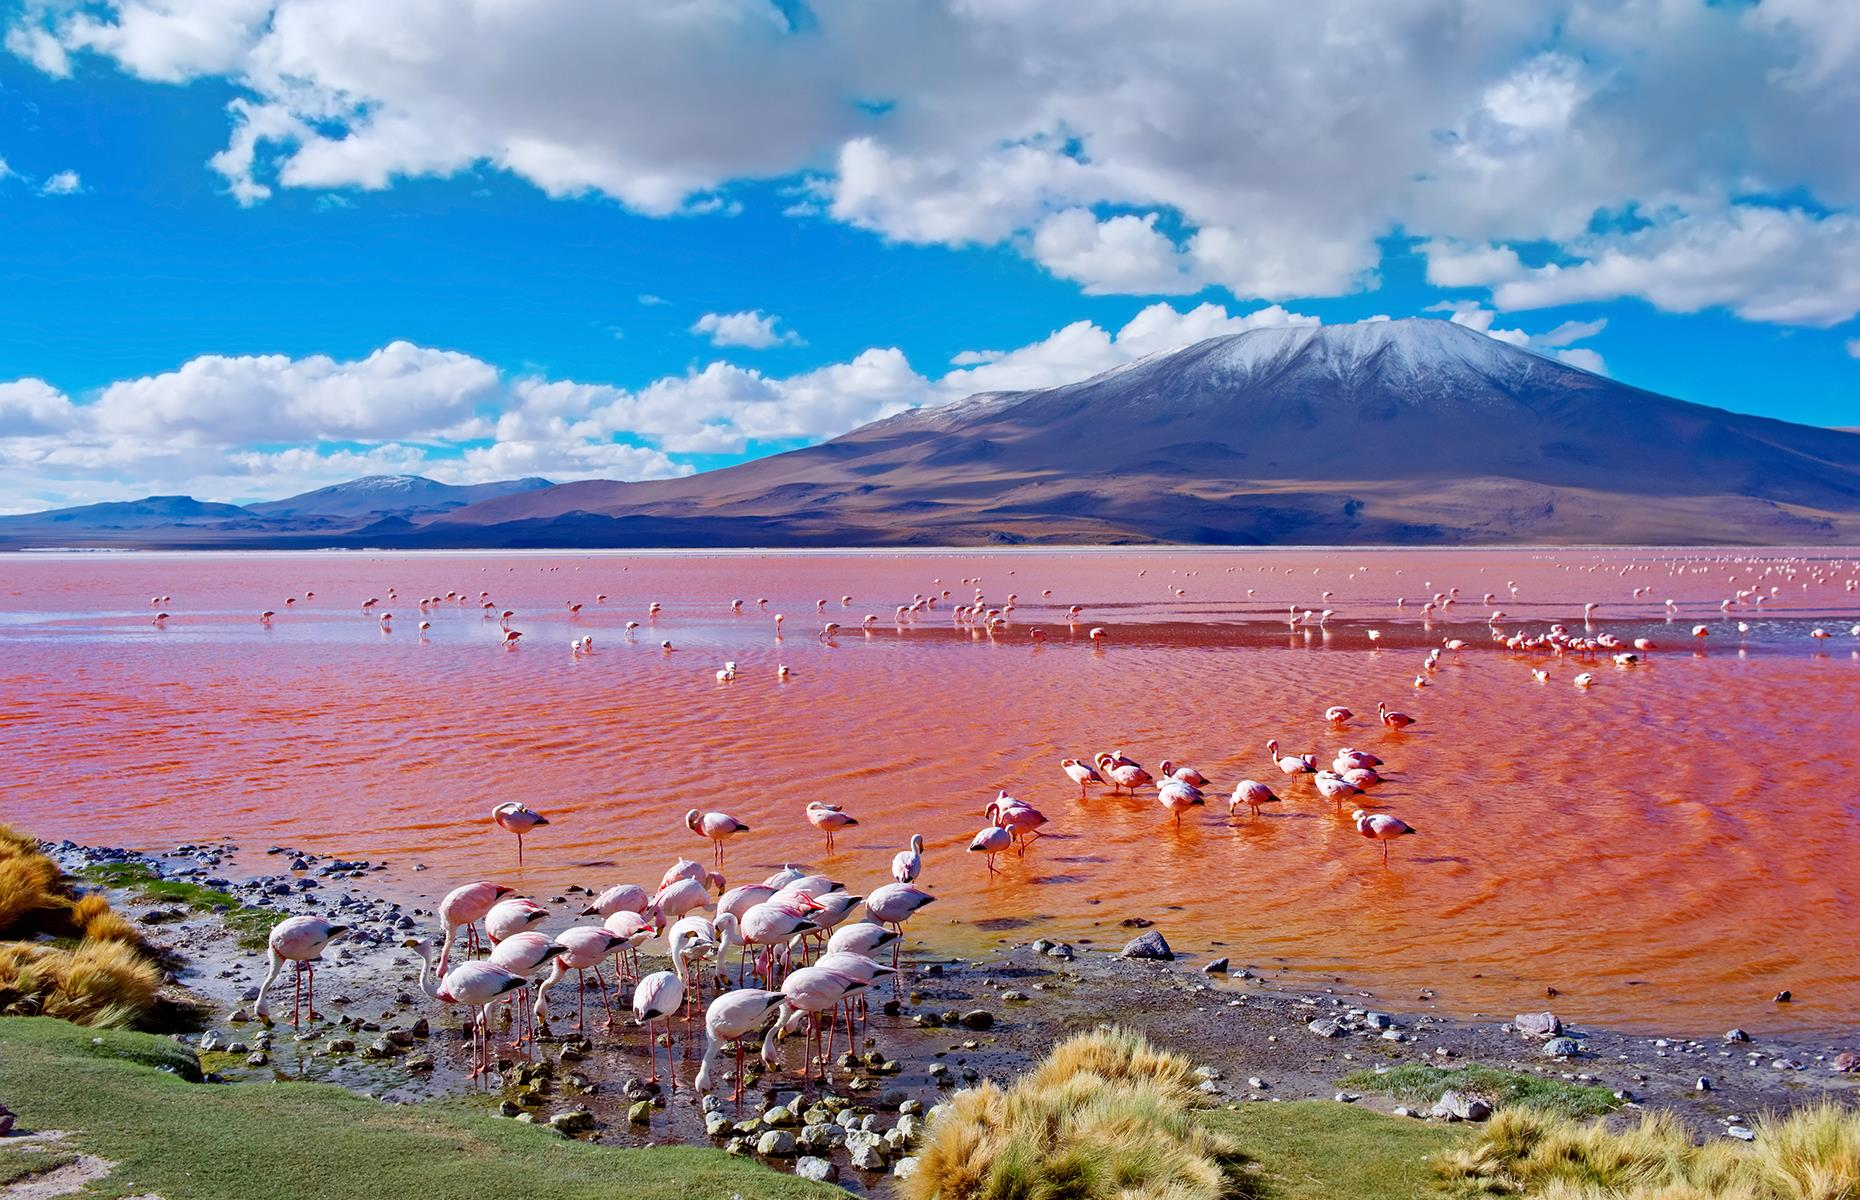 Slide 15 of 43: Located high up in a natural reserve close to the Chilean border, this shallow, red salt lake is considered to be one of Bolivia's most beautiful natural landmarks thanks to its striking appearance and large flocks of flamingos that hang out here. The water gets its unique color due to red sediments in the water and pigmentation of some algae.